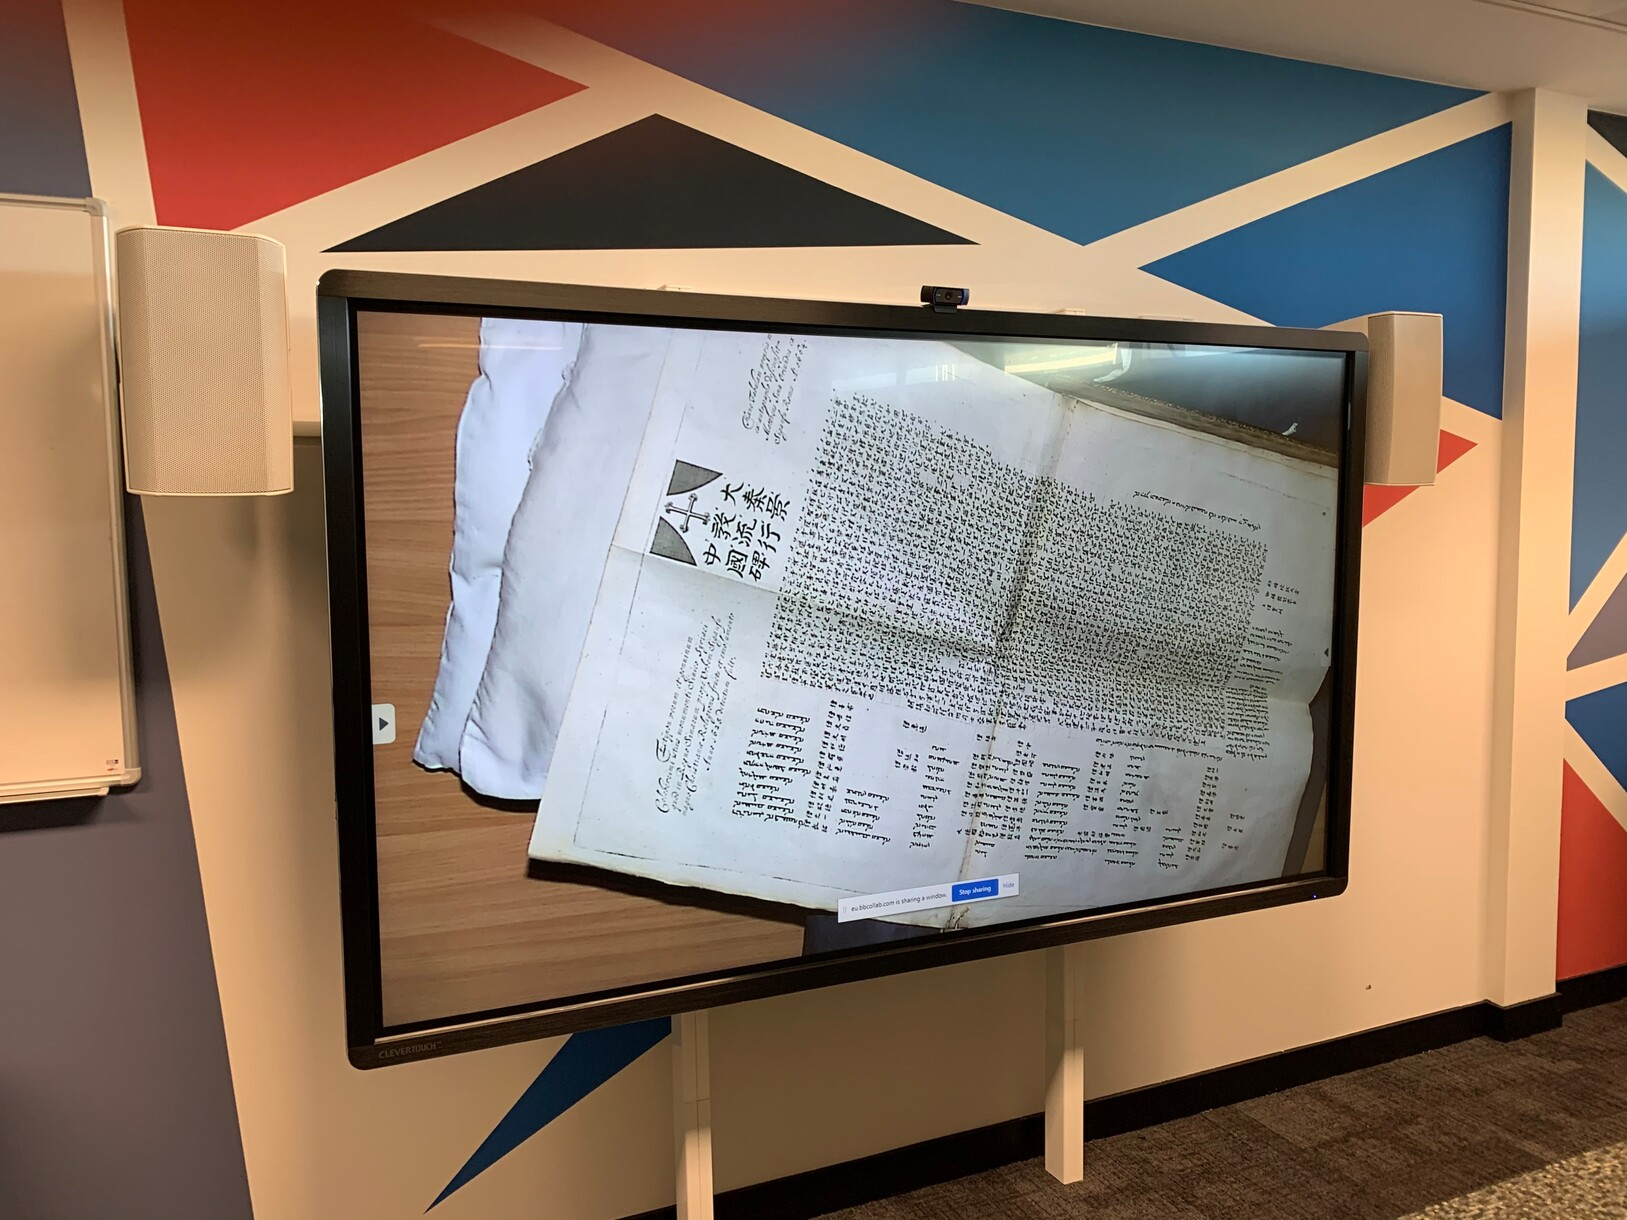 Rare books and other items displayed on-screen using a VZ-C6 Visualizer during online classes at The University of Edinburgh